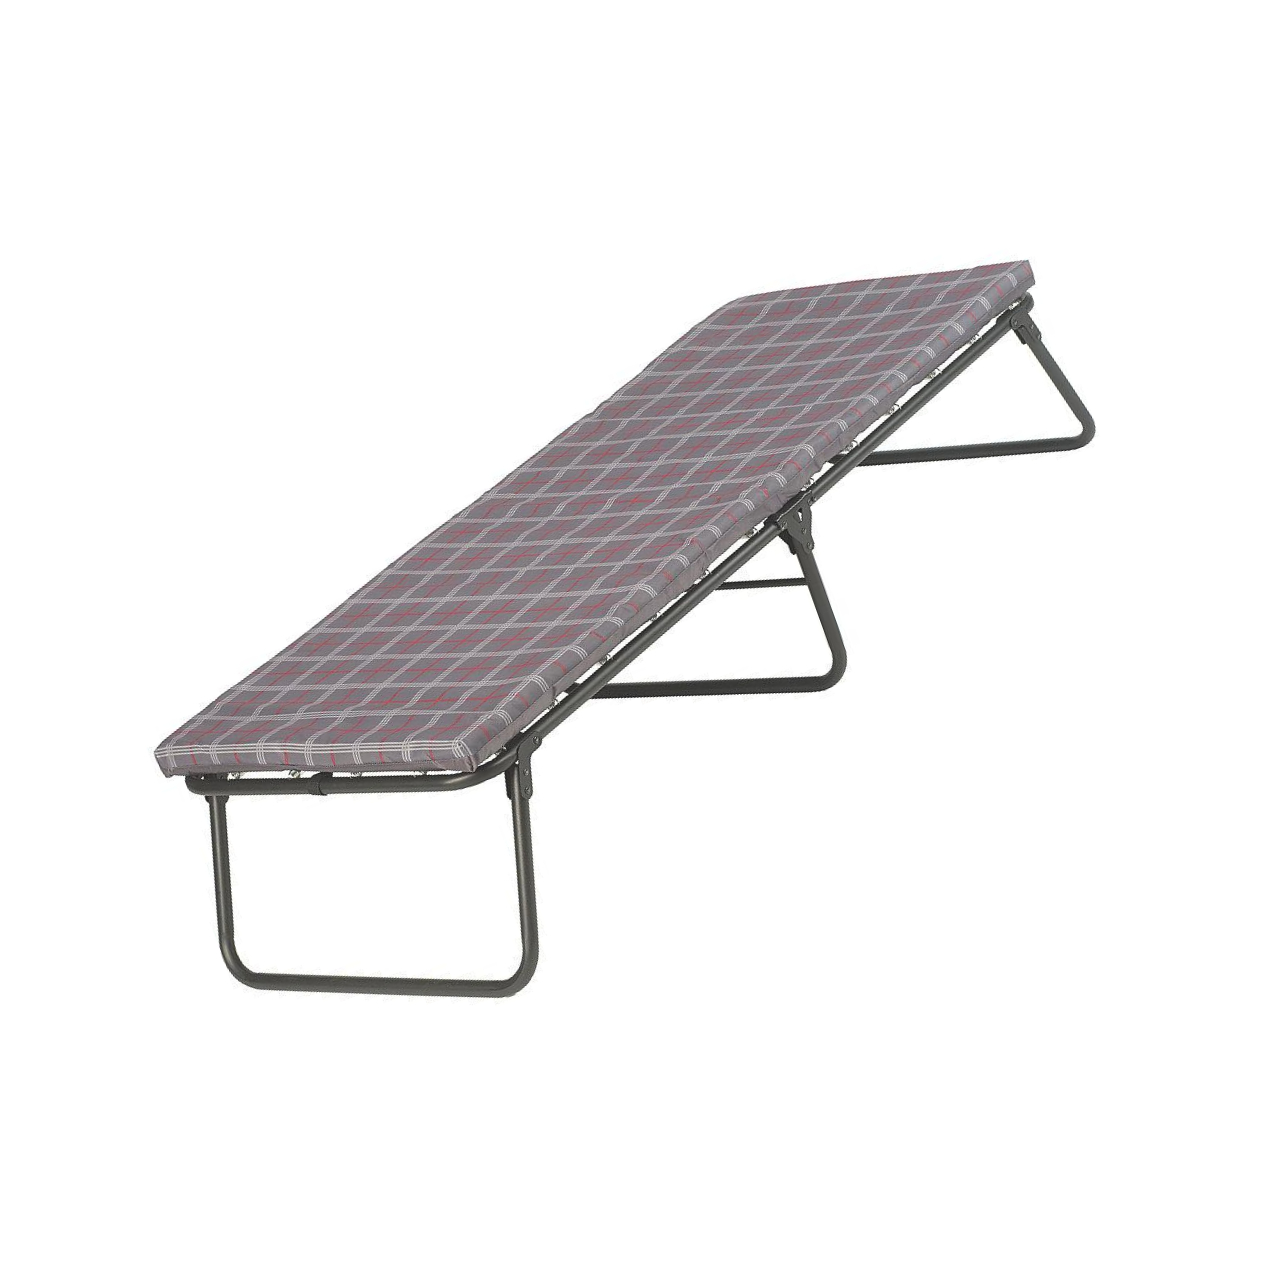 COLEMAN ComfortSmart Cot Folding Bed Camping Thick Foam ...